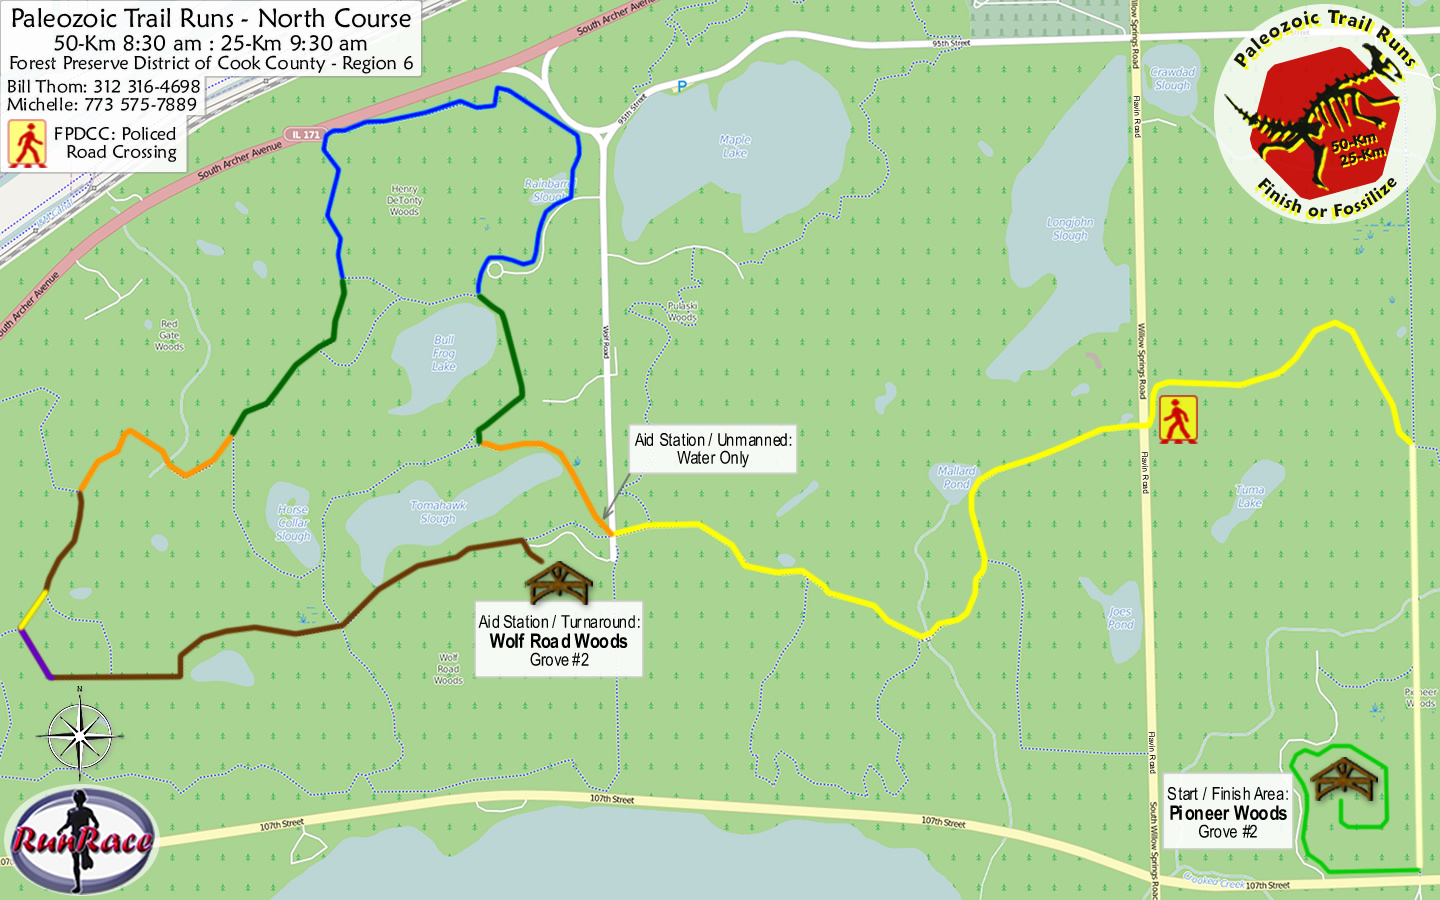 [racecourse map: Paleozoic Trail Runs - Silurian Spring]